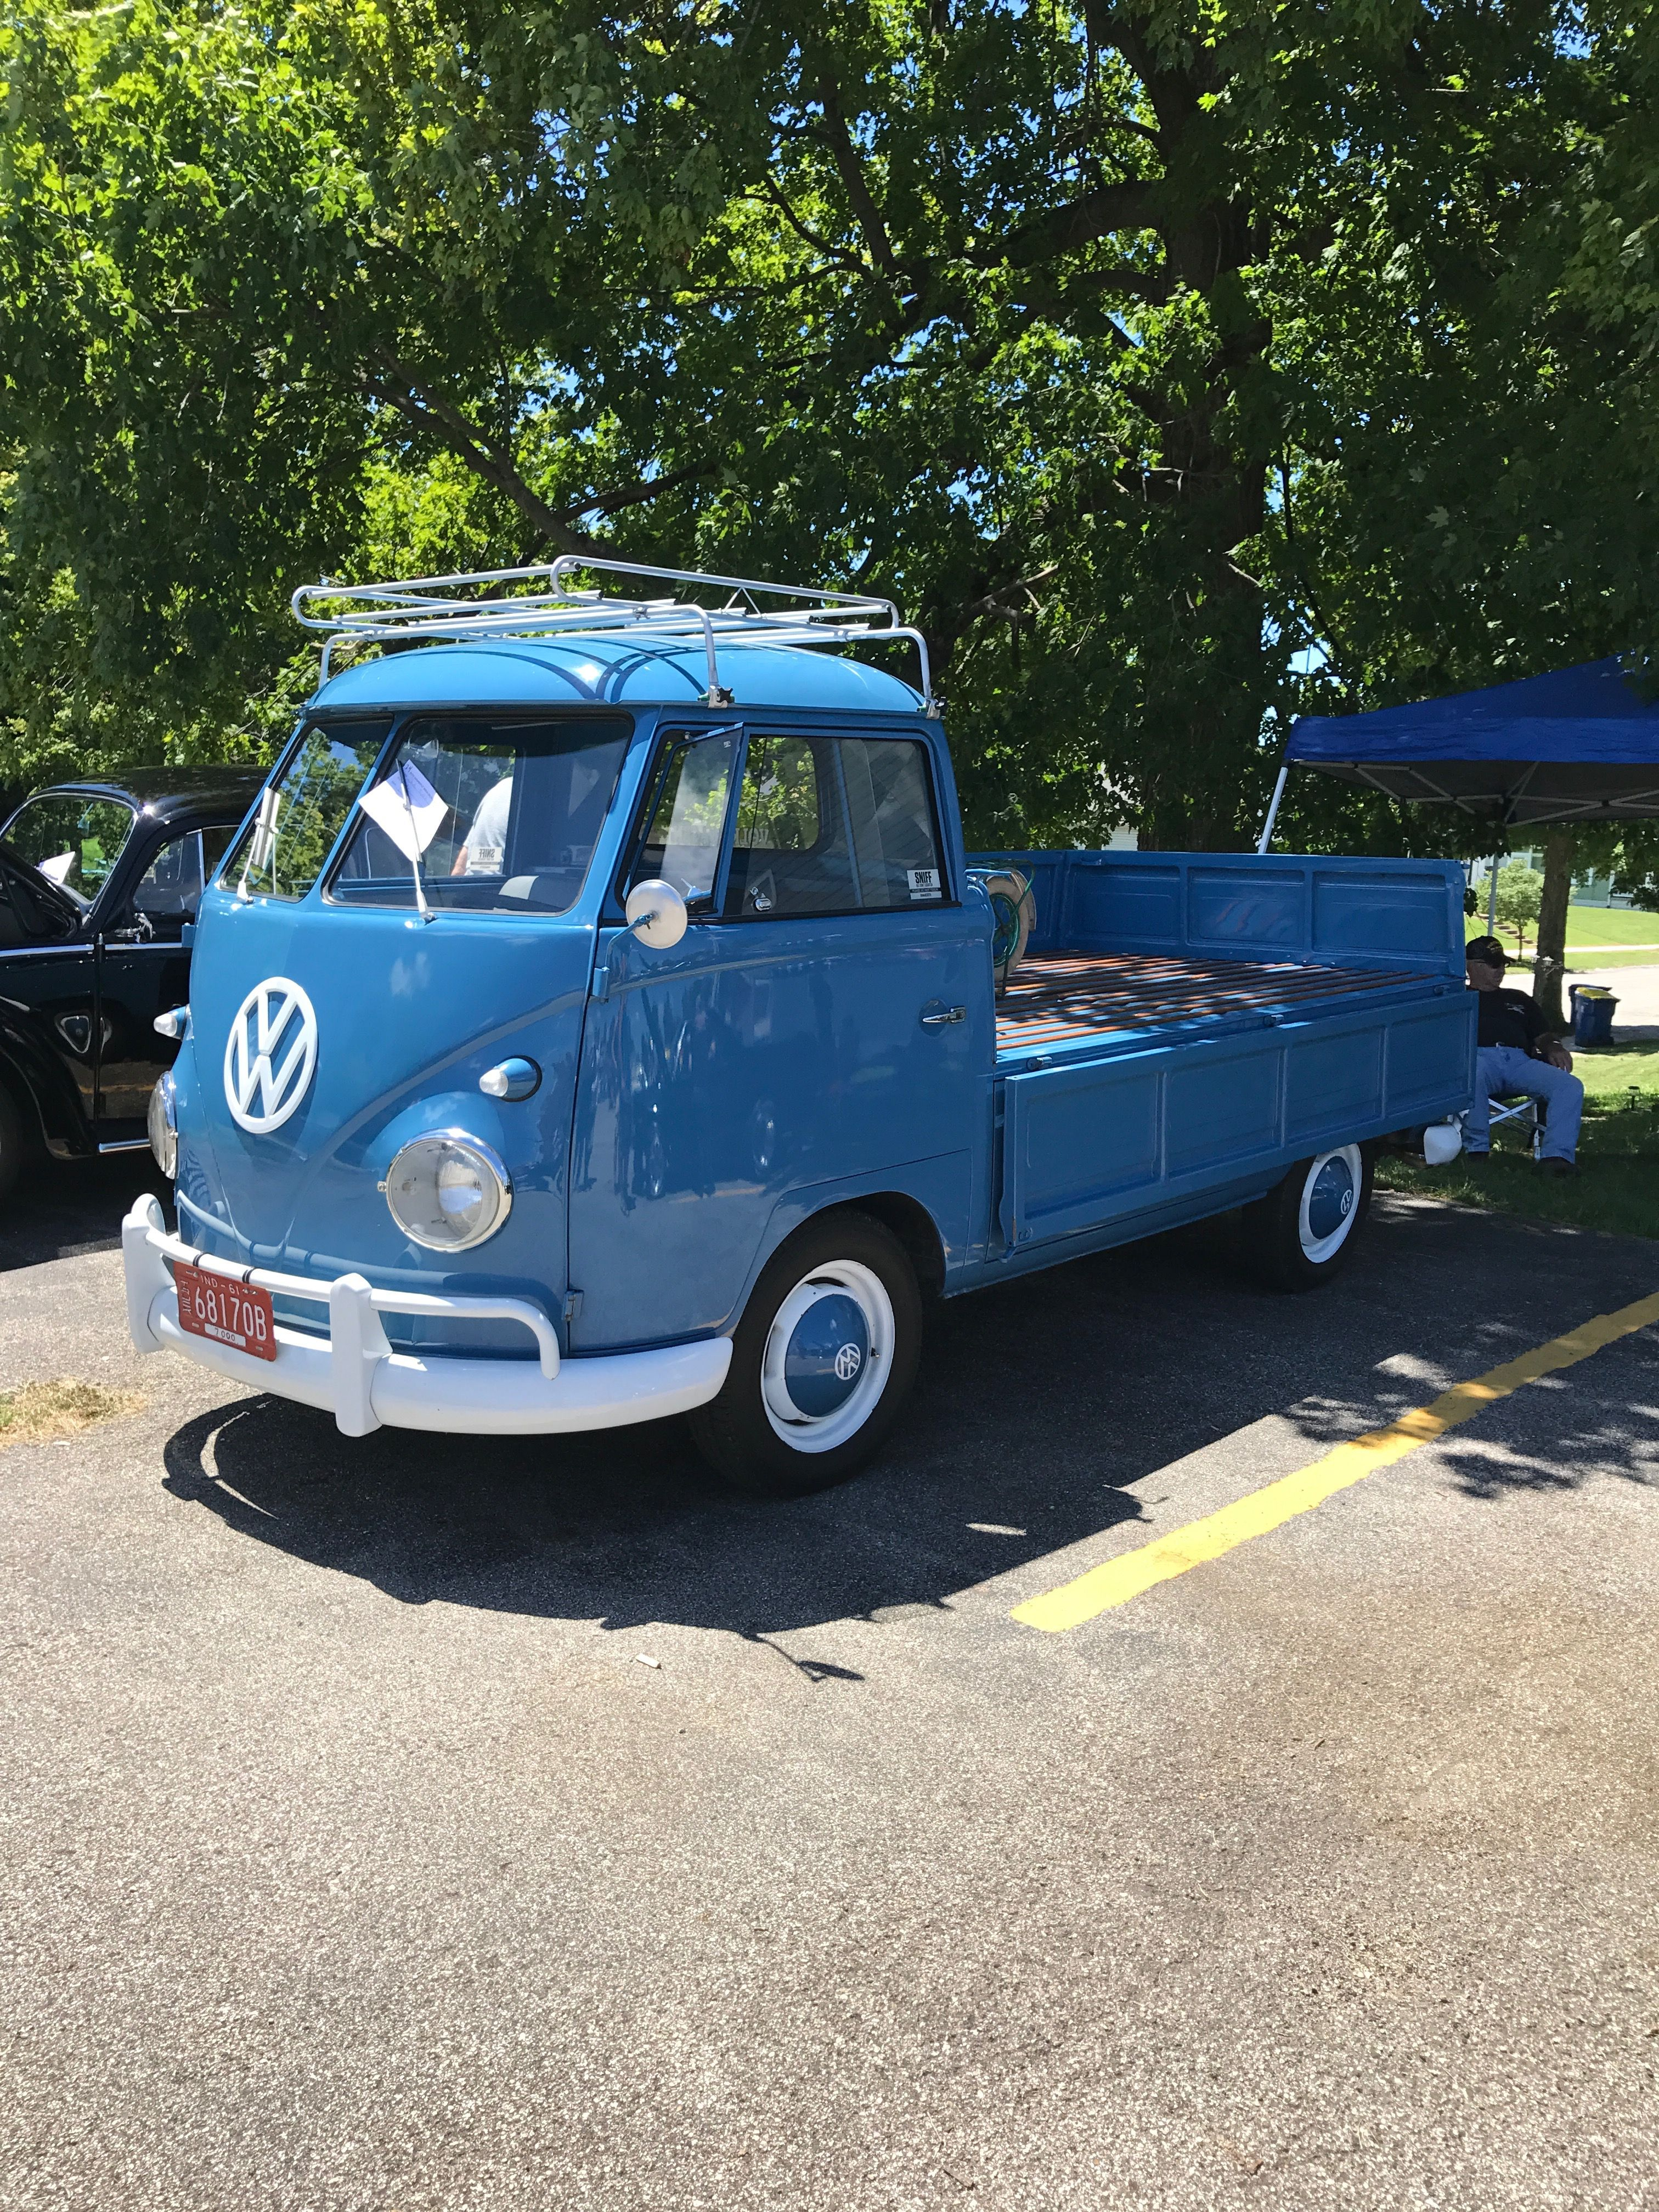 This was one of the unique vehicles in the car show put on by Butch ...